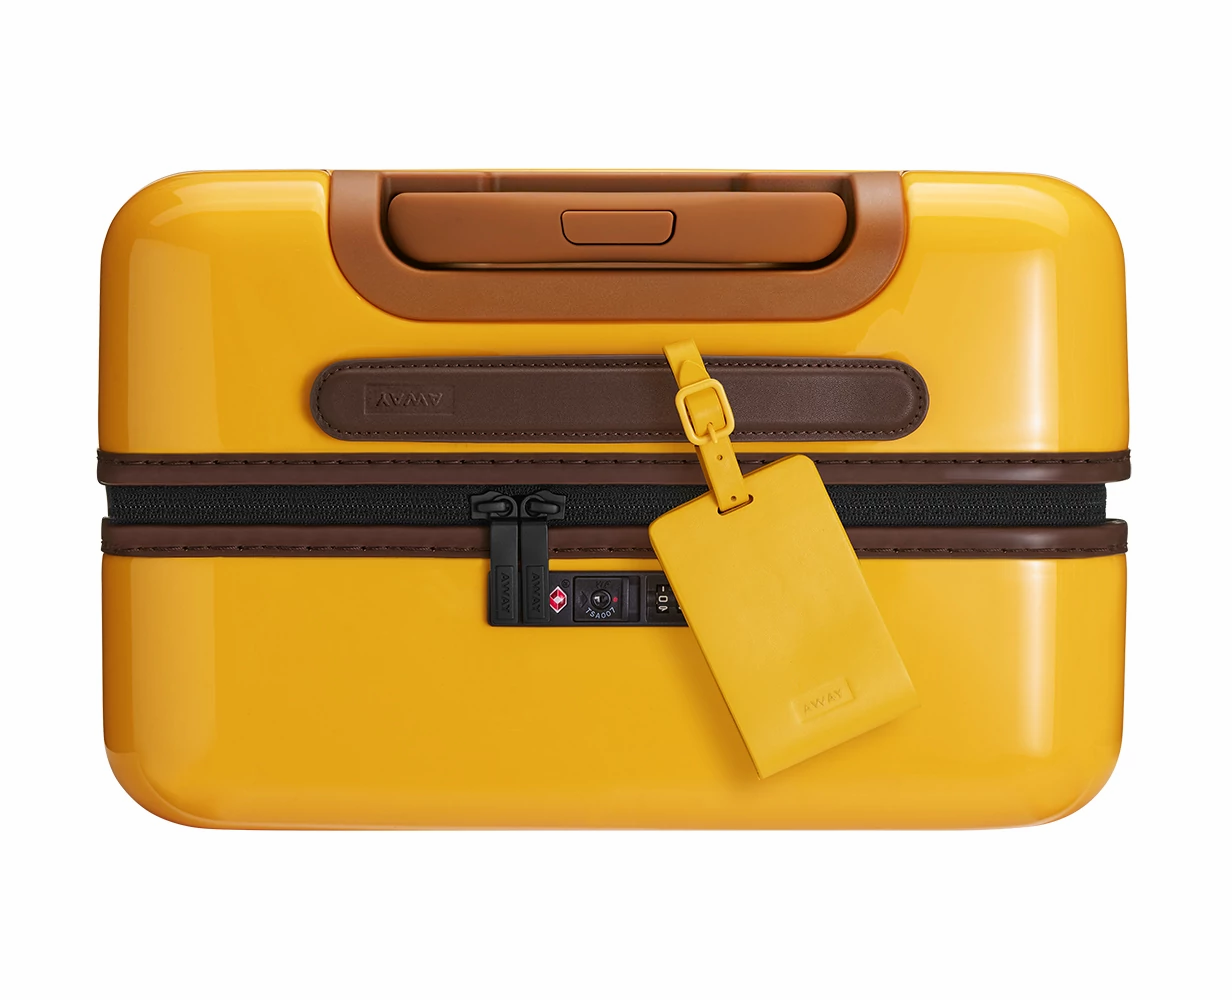 Golden leather luggage tag shown on handle of Golden Ombre hard suitcase.